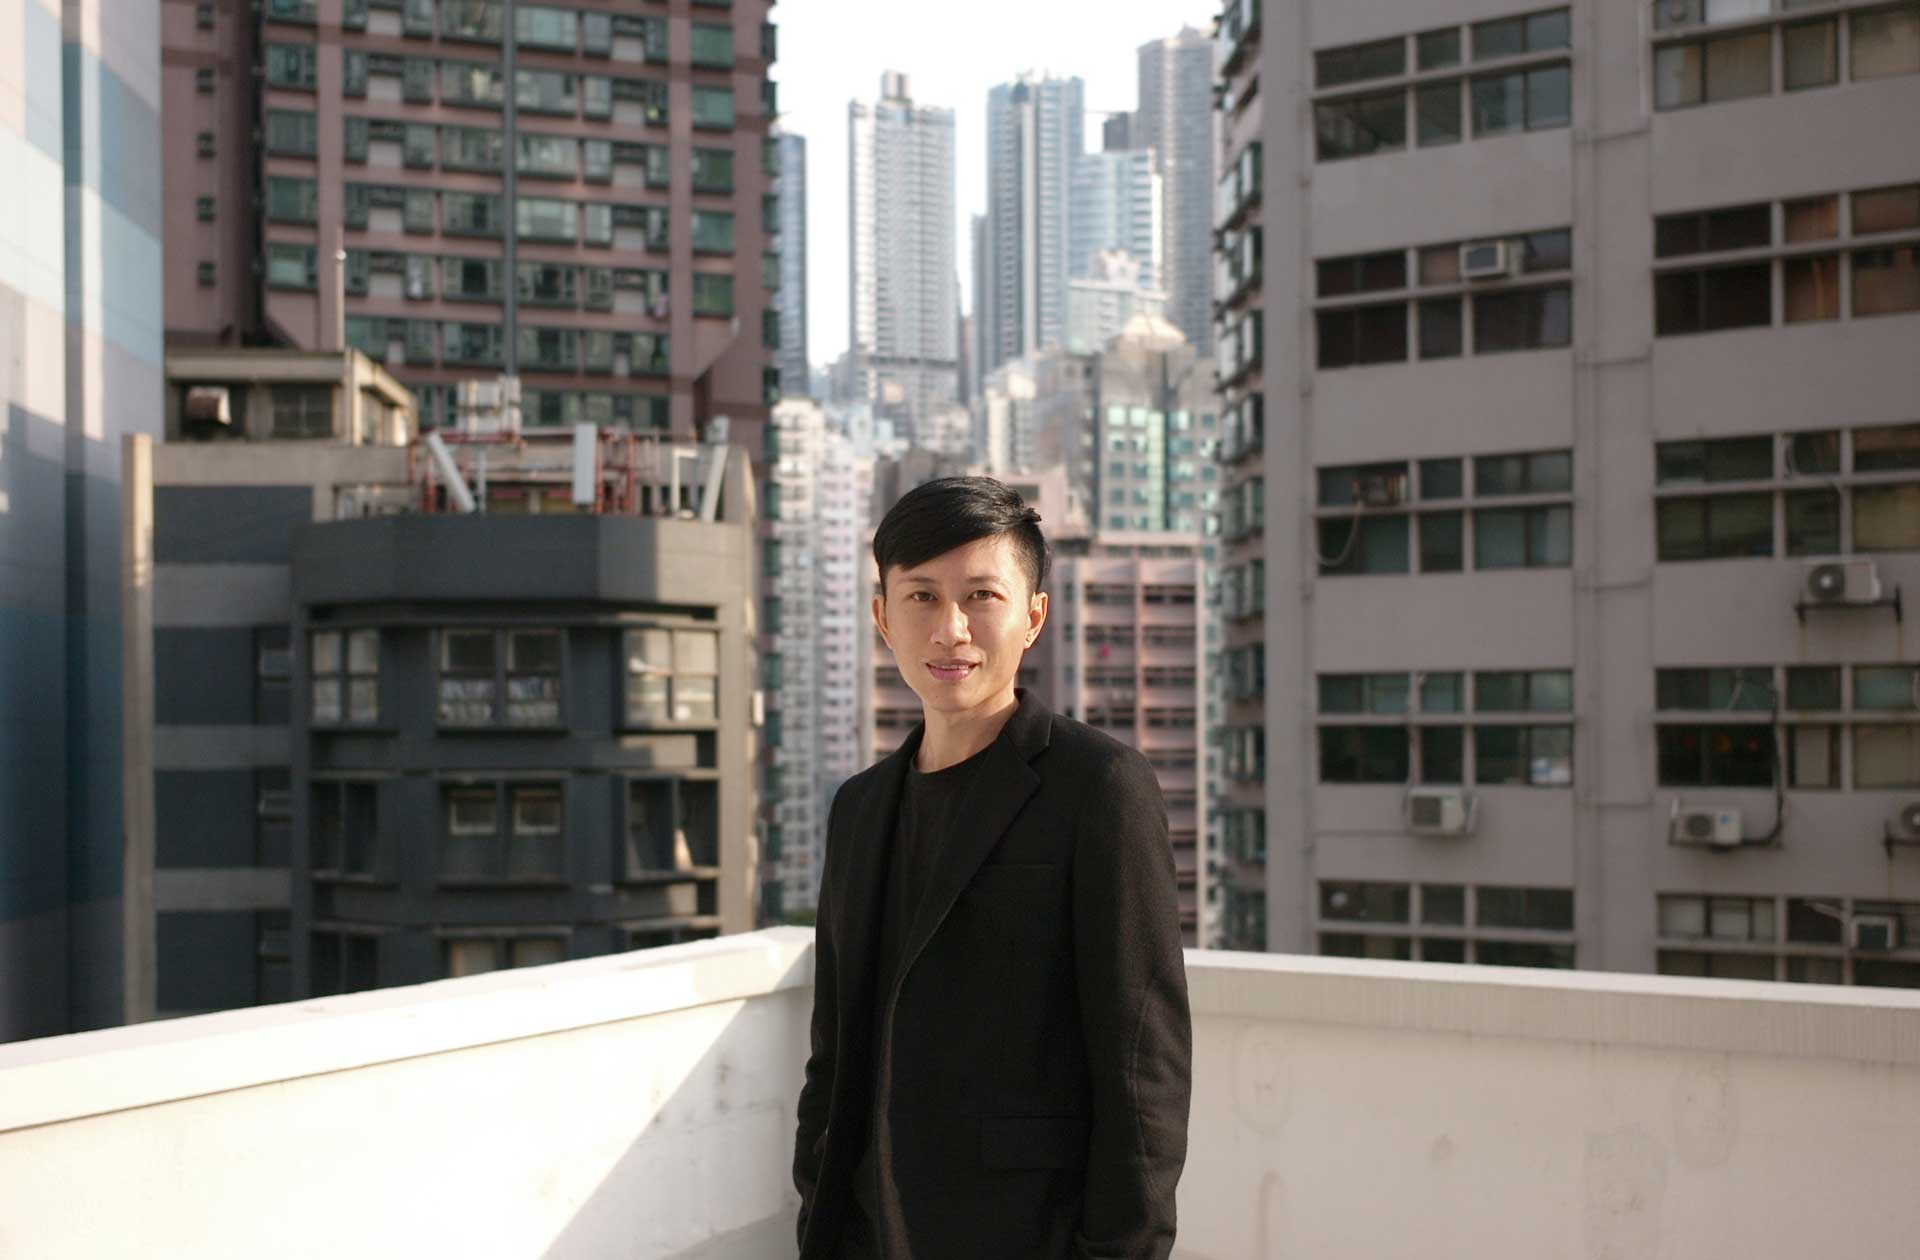 Architect and designer Stanley Siu